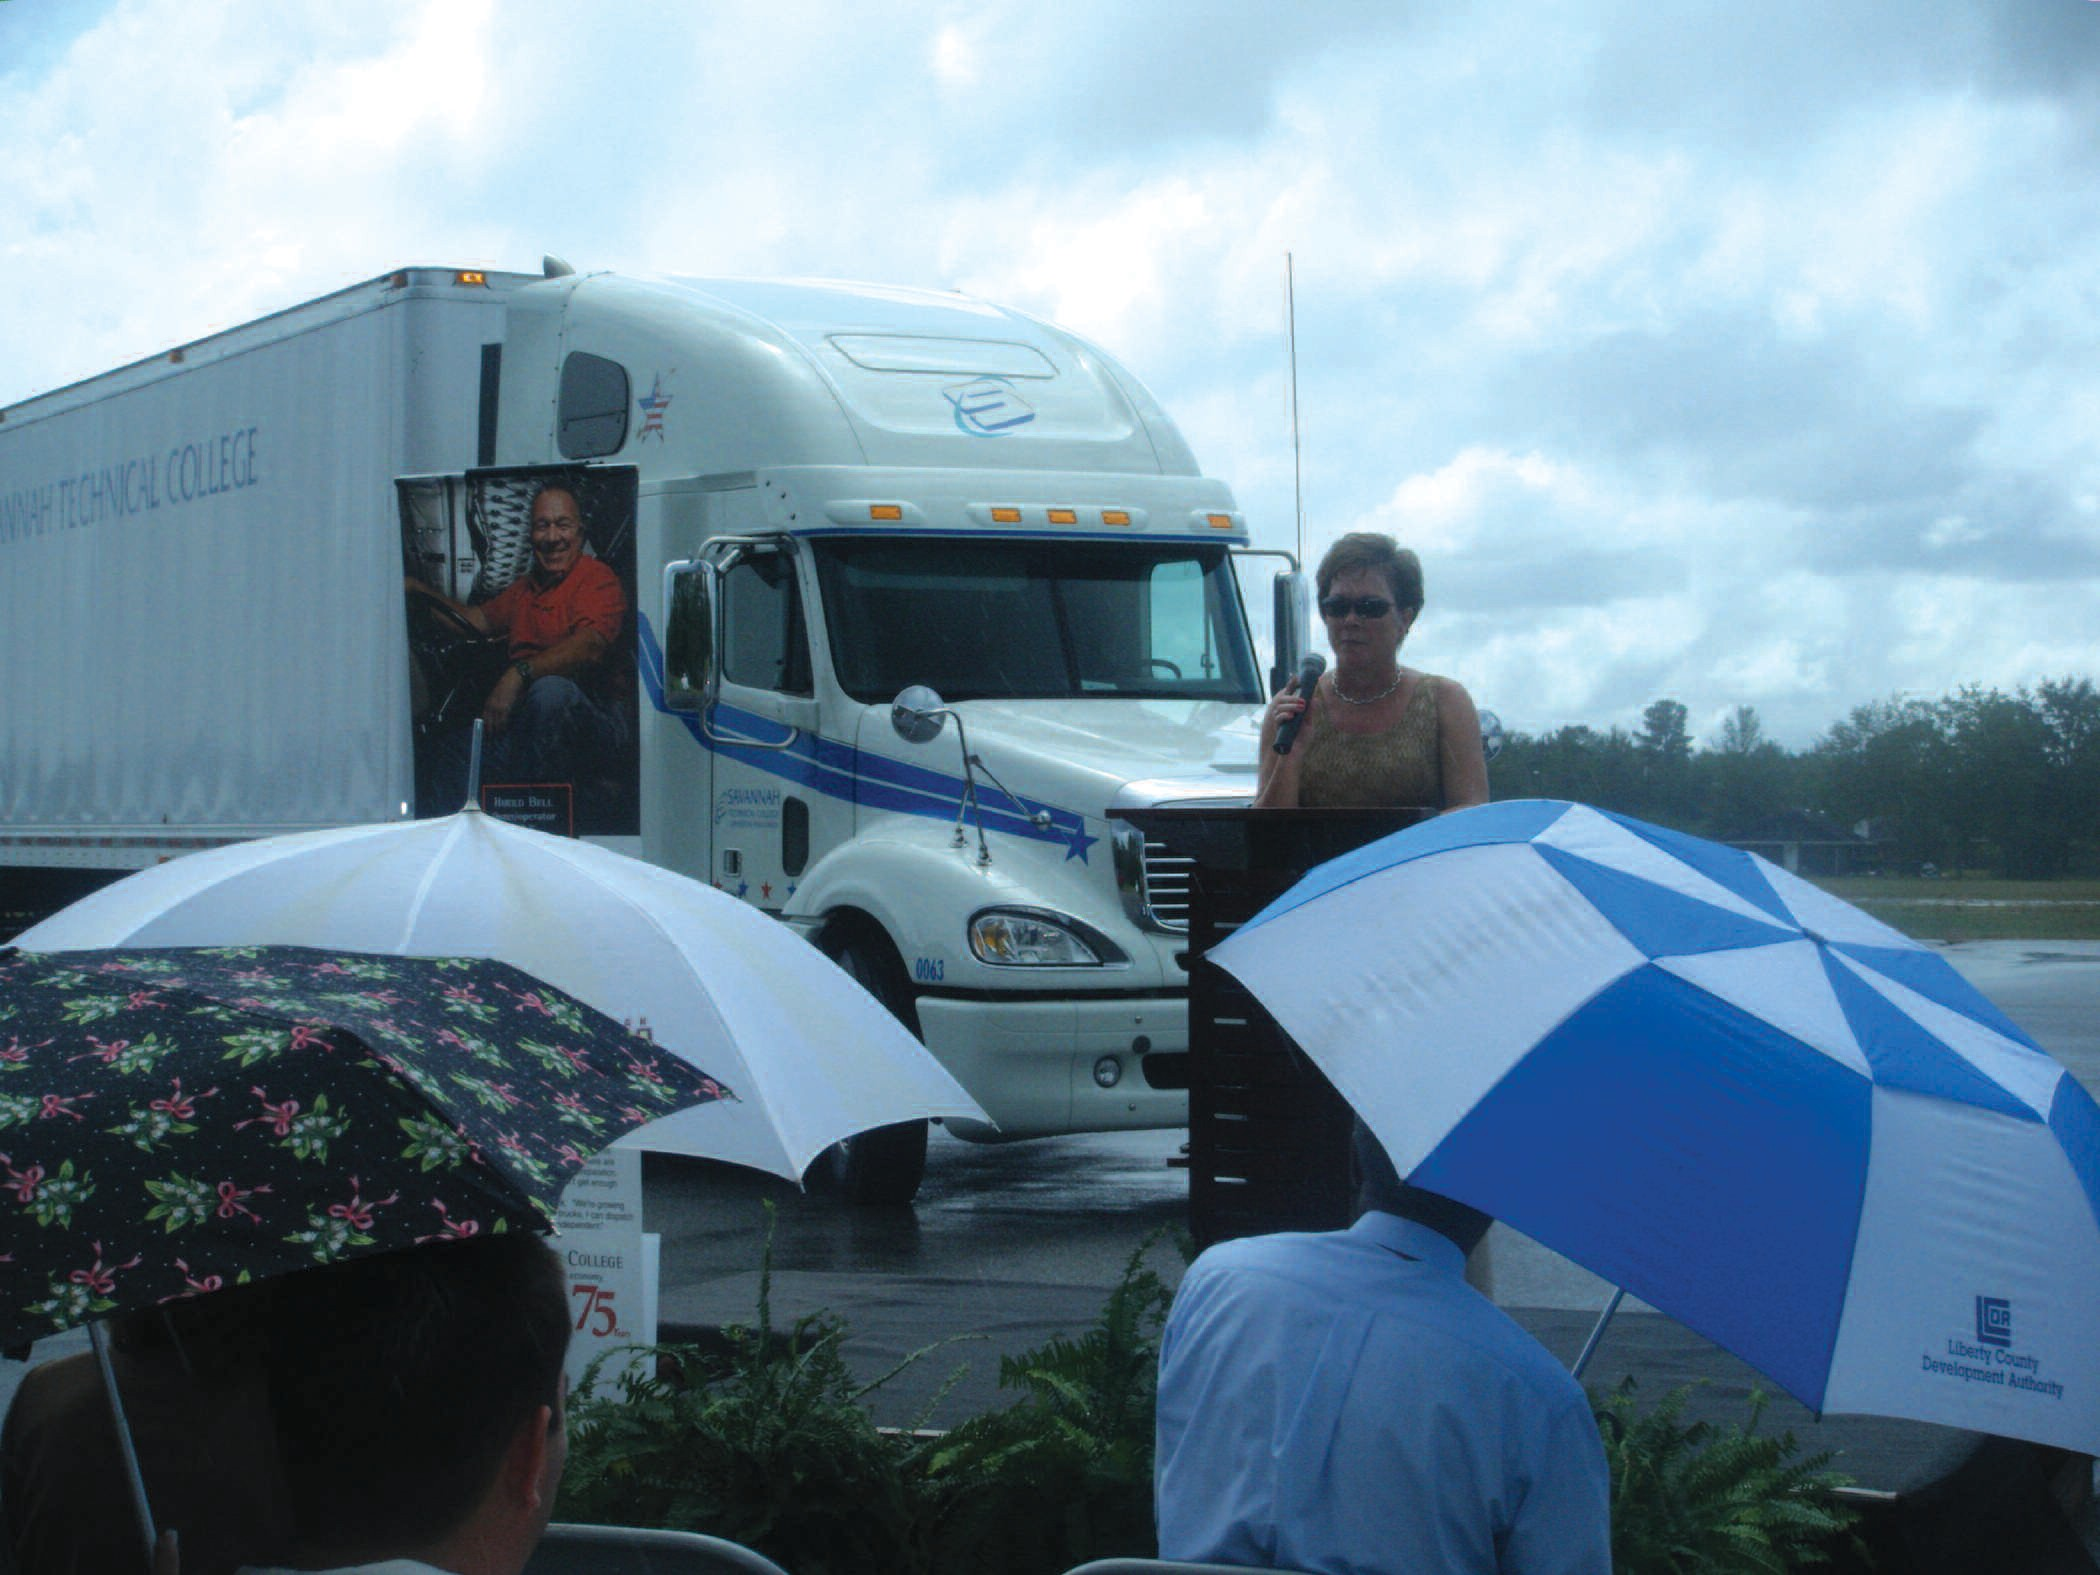 STC President Kathy Love addresses the crowd as the new STC truck is displayed in the background.